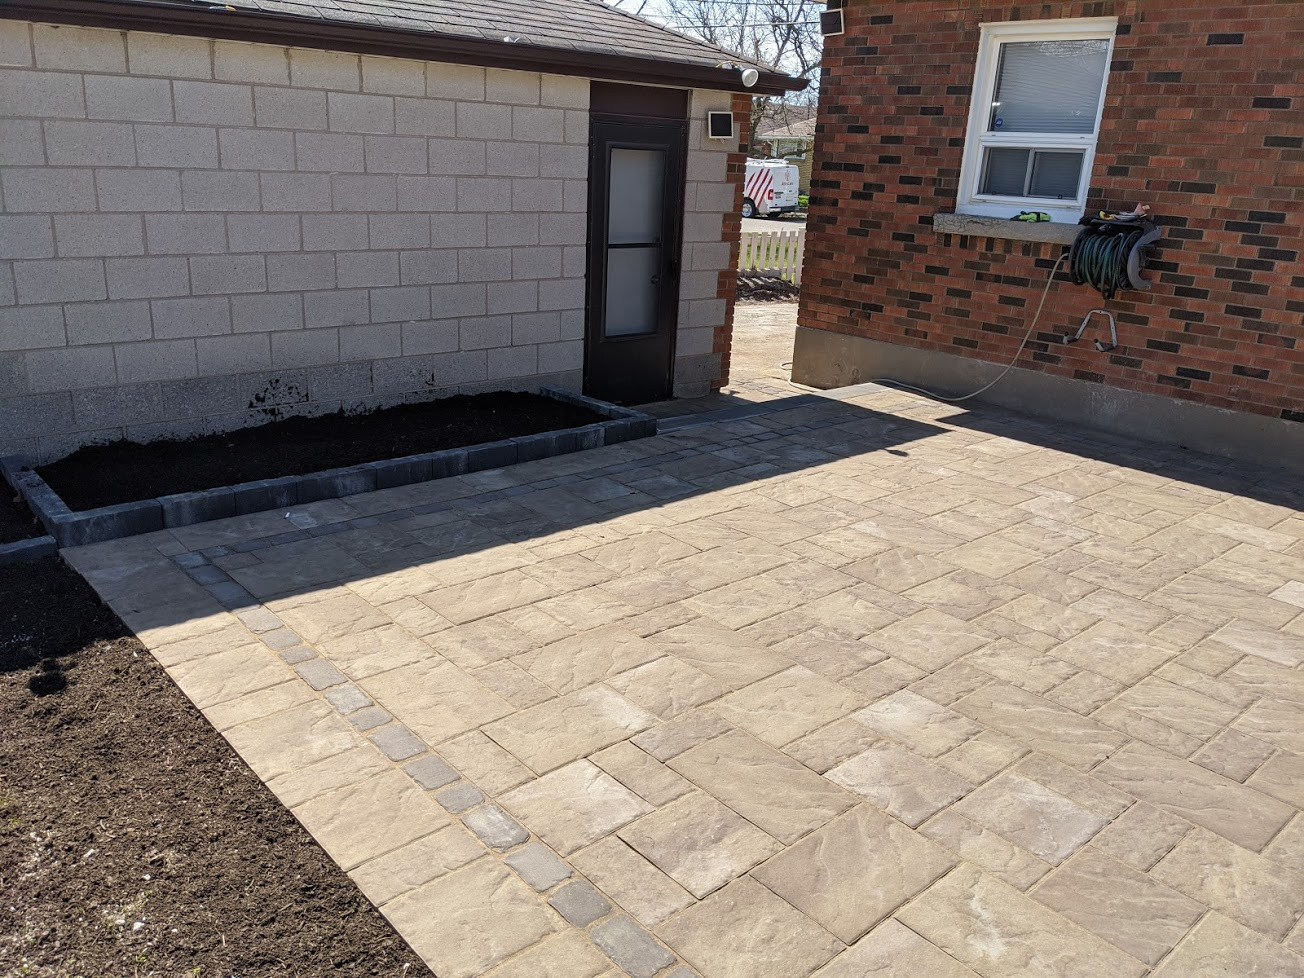 interlock_patio_home.jpg